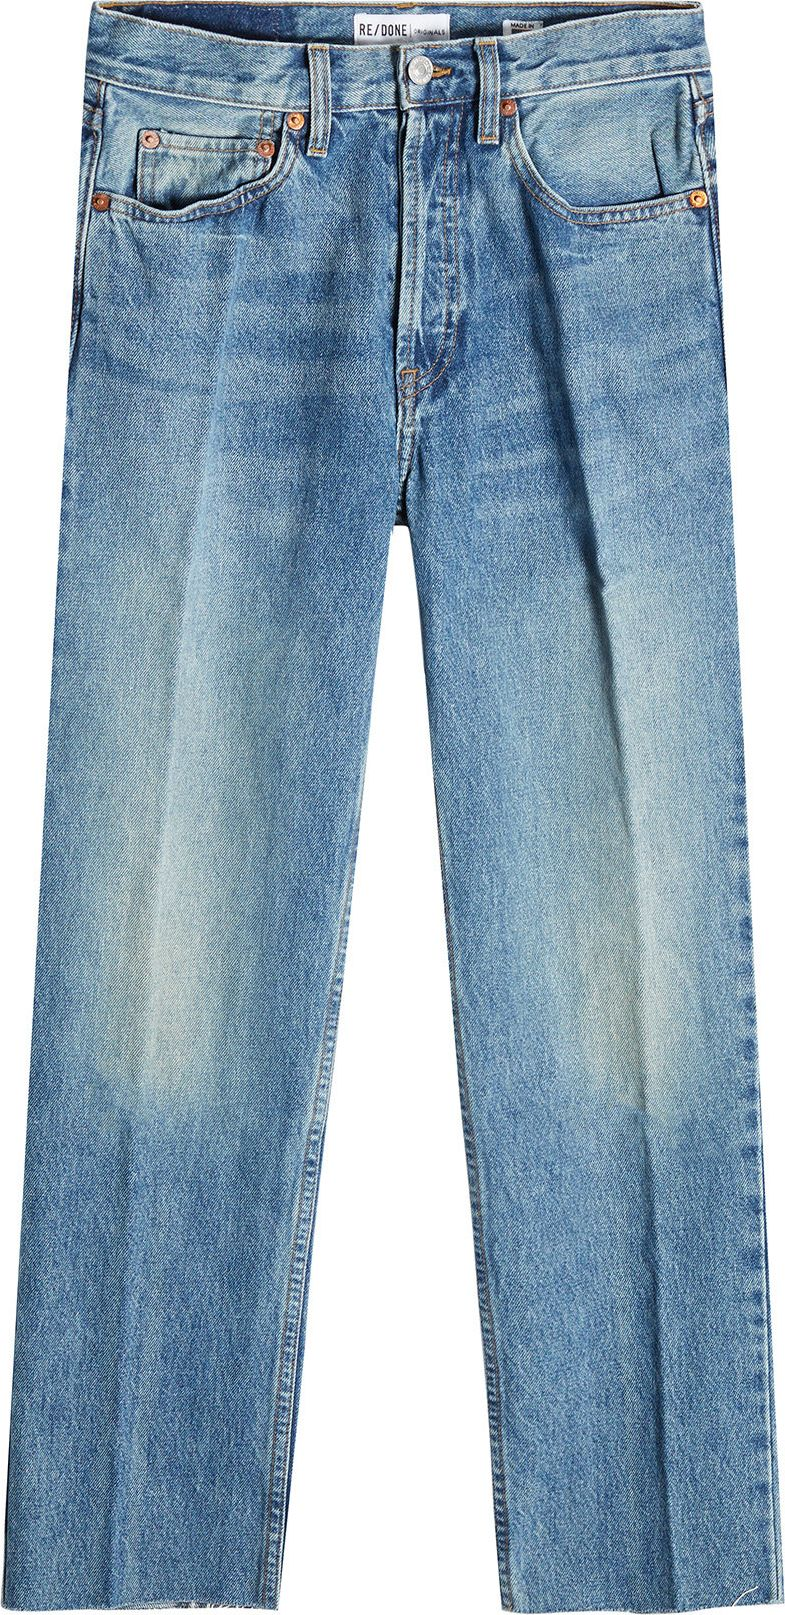 RE/DONE - High-Waisted Cropped Jeans